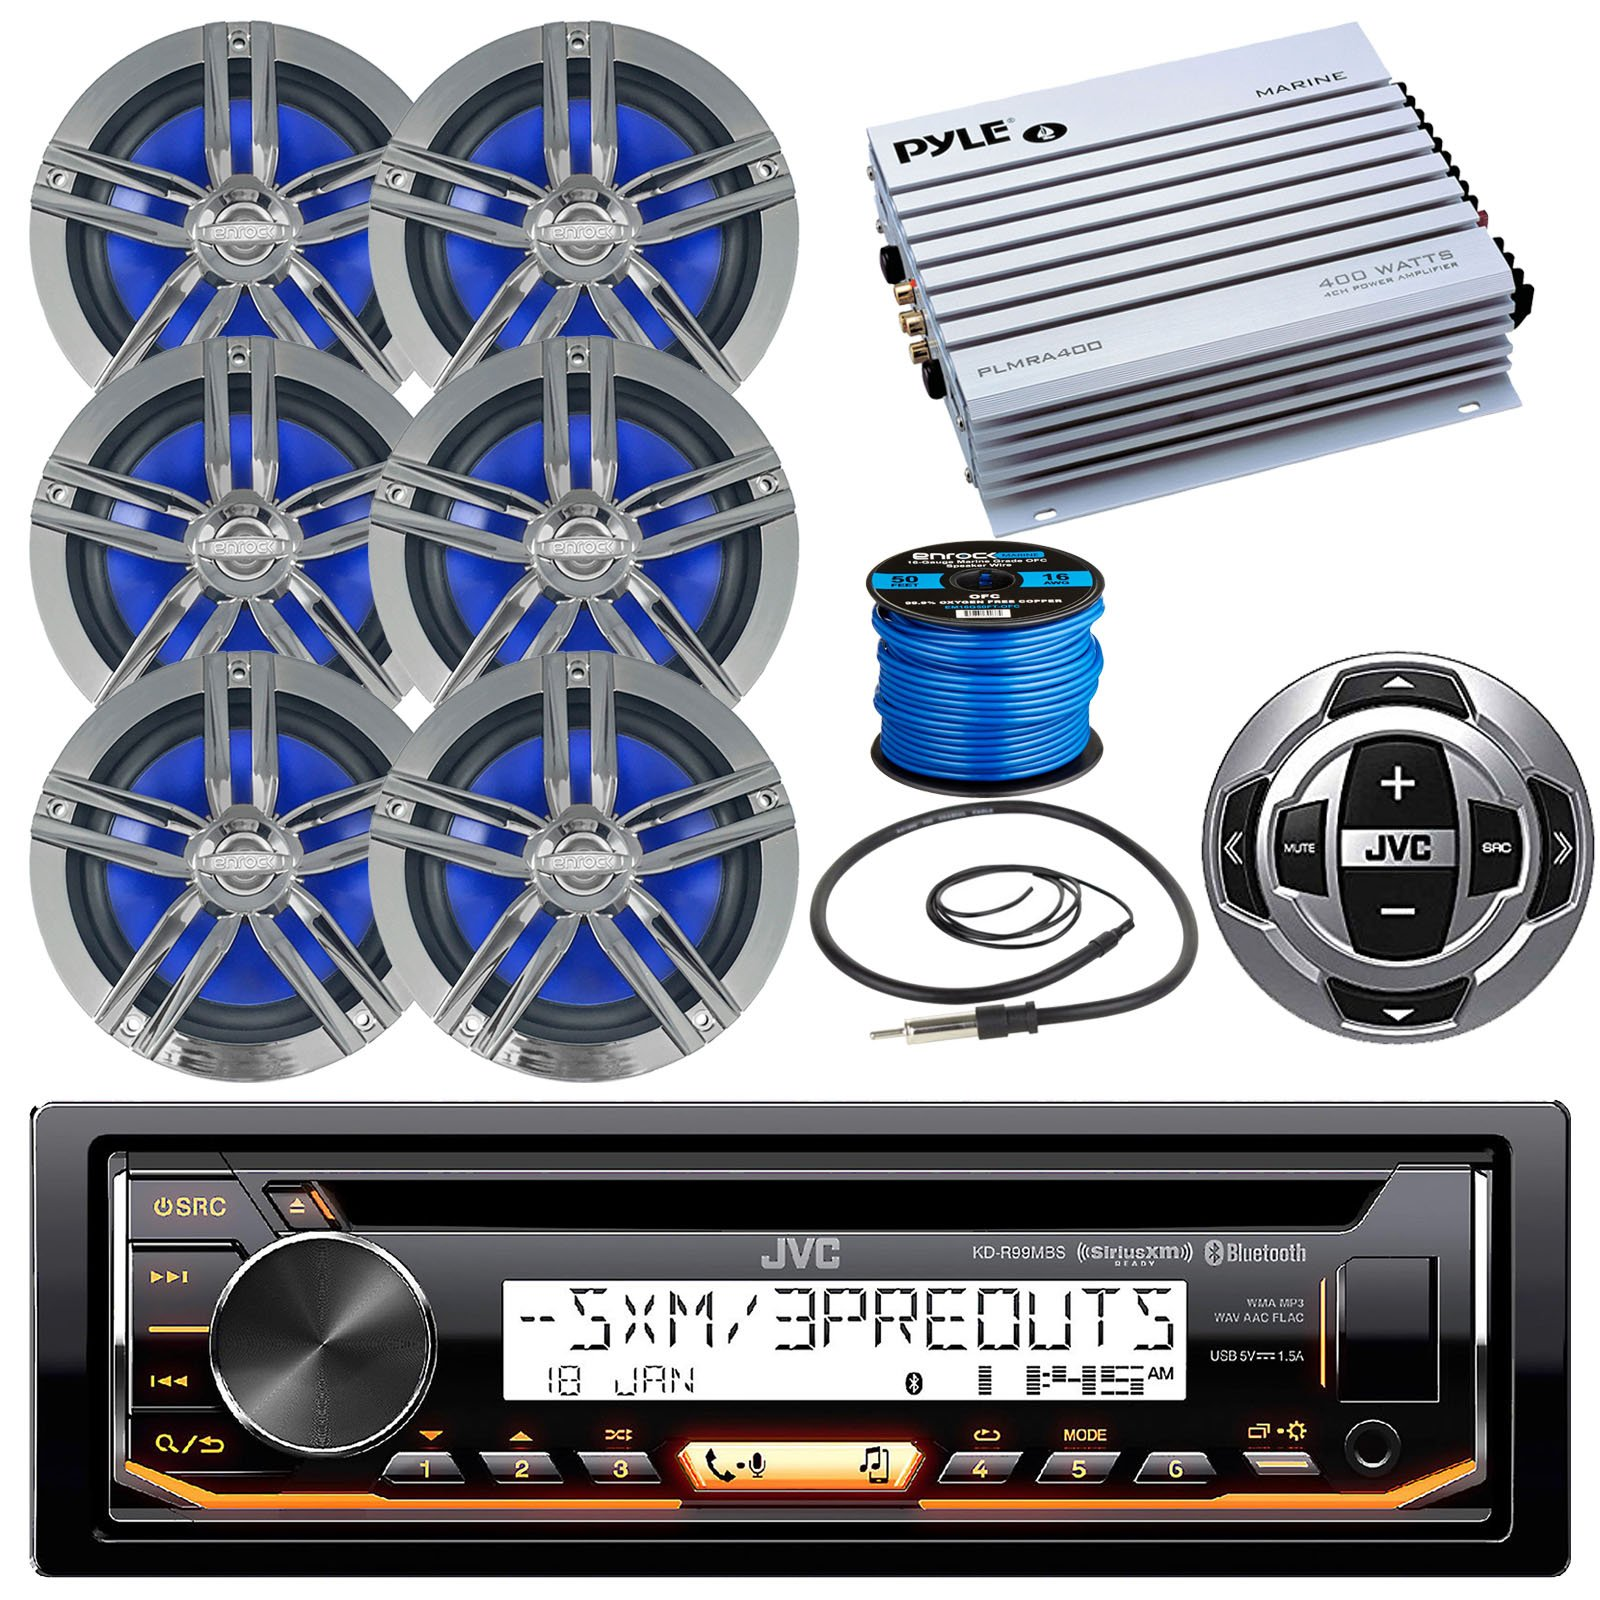 JVC KDR85MBS Marine Stereo Receiver Bundle Combo With Remote Control + 6x Enrock Black/Chrome 6.5'' Boat Speaker + Waterproof Amplifier + Radio Wire Antenna + 50 Foot 16g Speaker Wire (Chrome/Black)